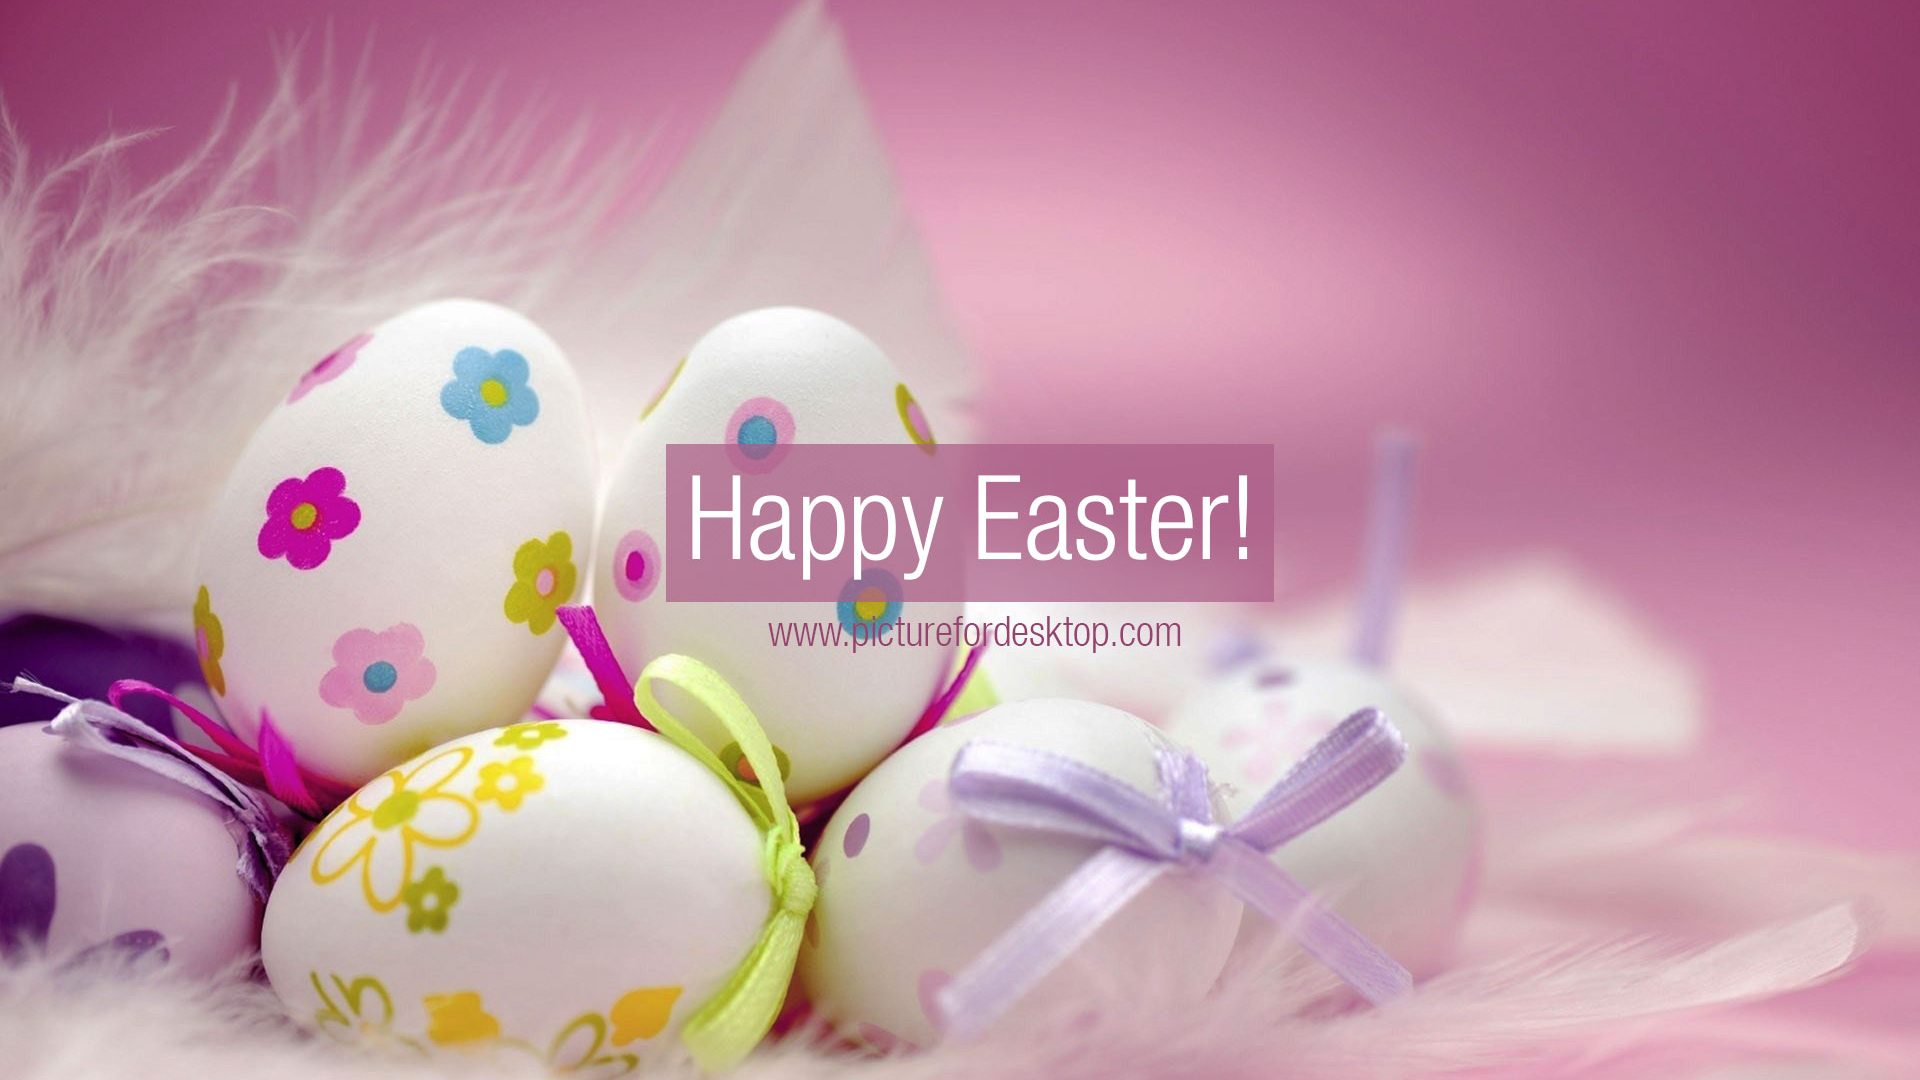 Free Download Happy Easter 2014 Wallpaper For Pc Mobile Android